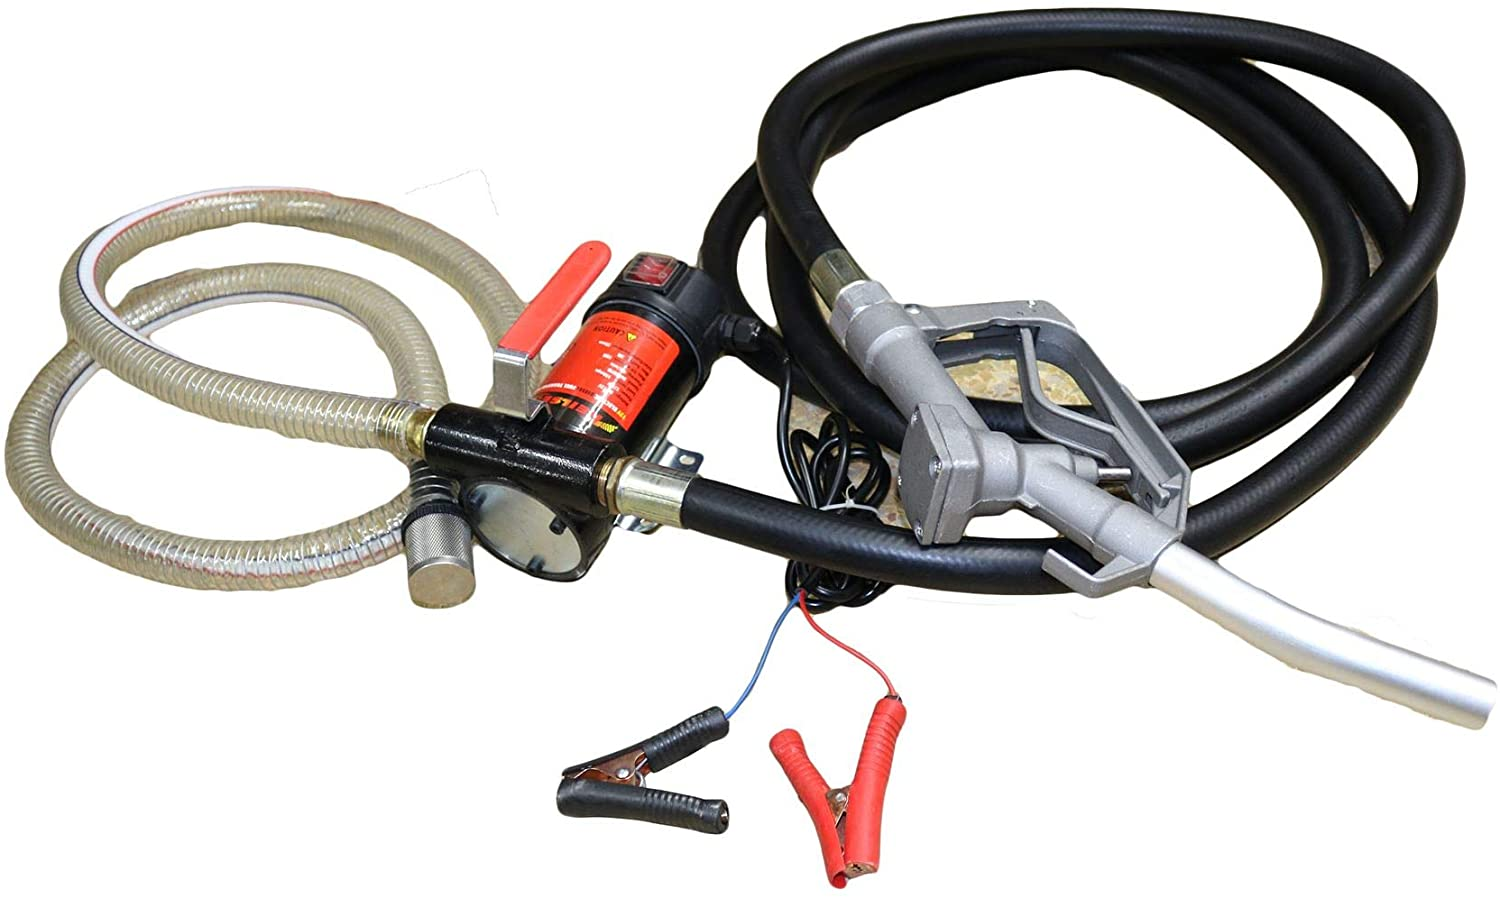 AB Tools-Neilsen 12V Electric Battery Powered Diesel Oil Fuel Fluid Transfer Pump Extractor